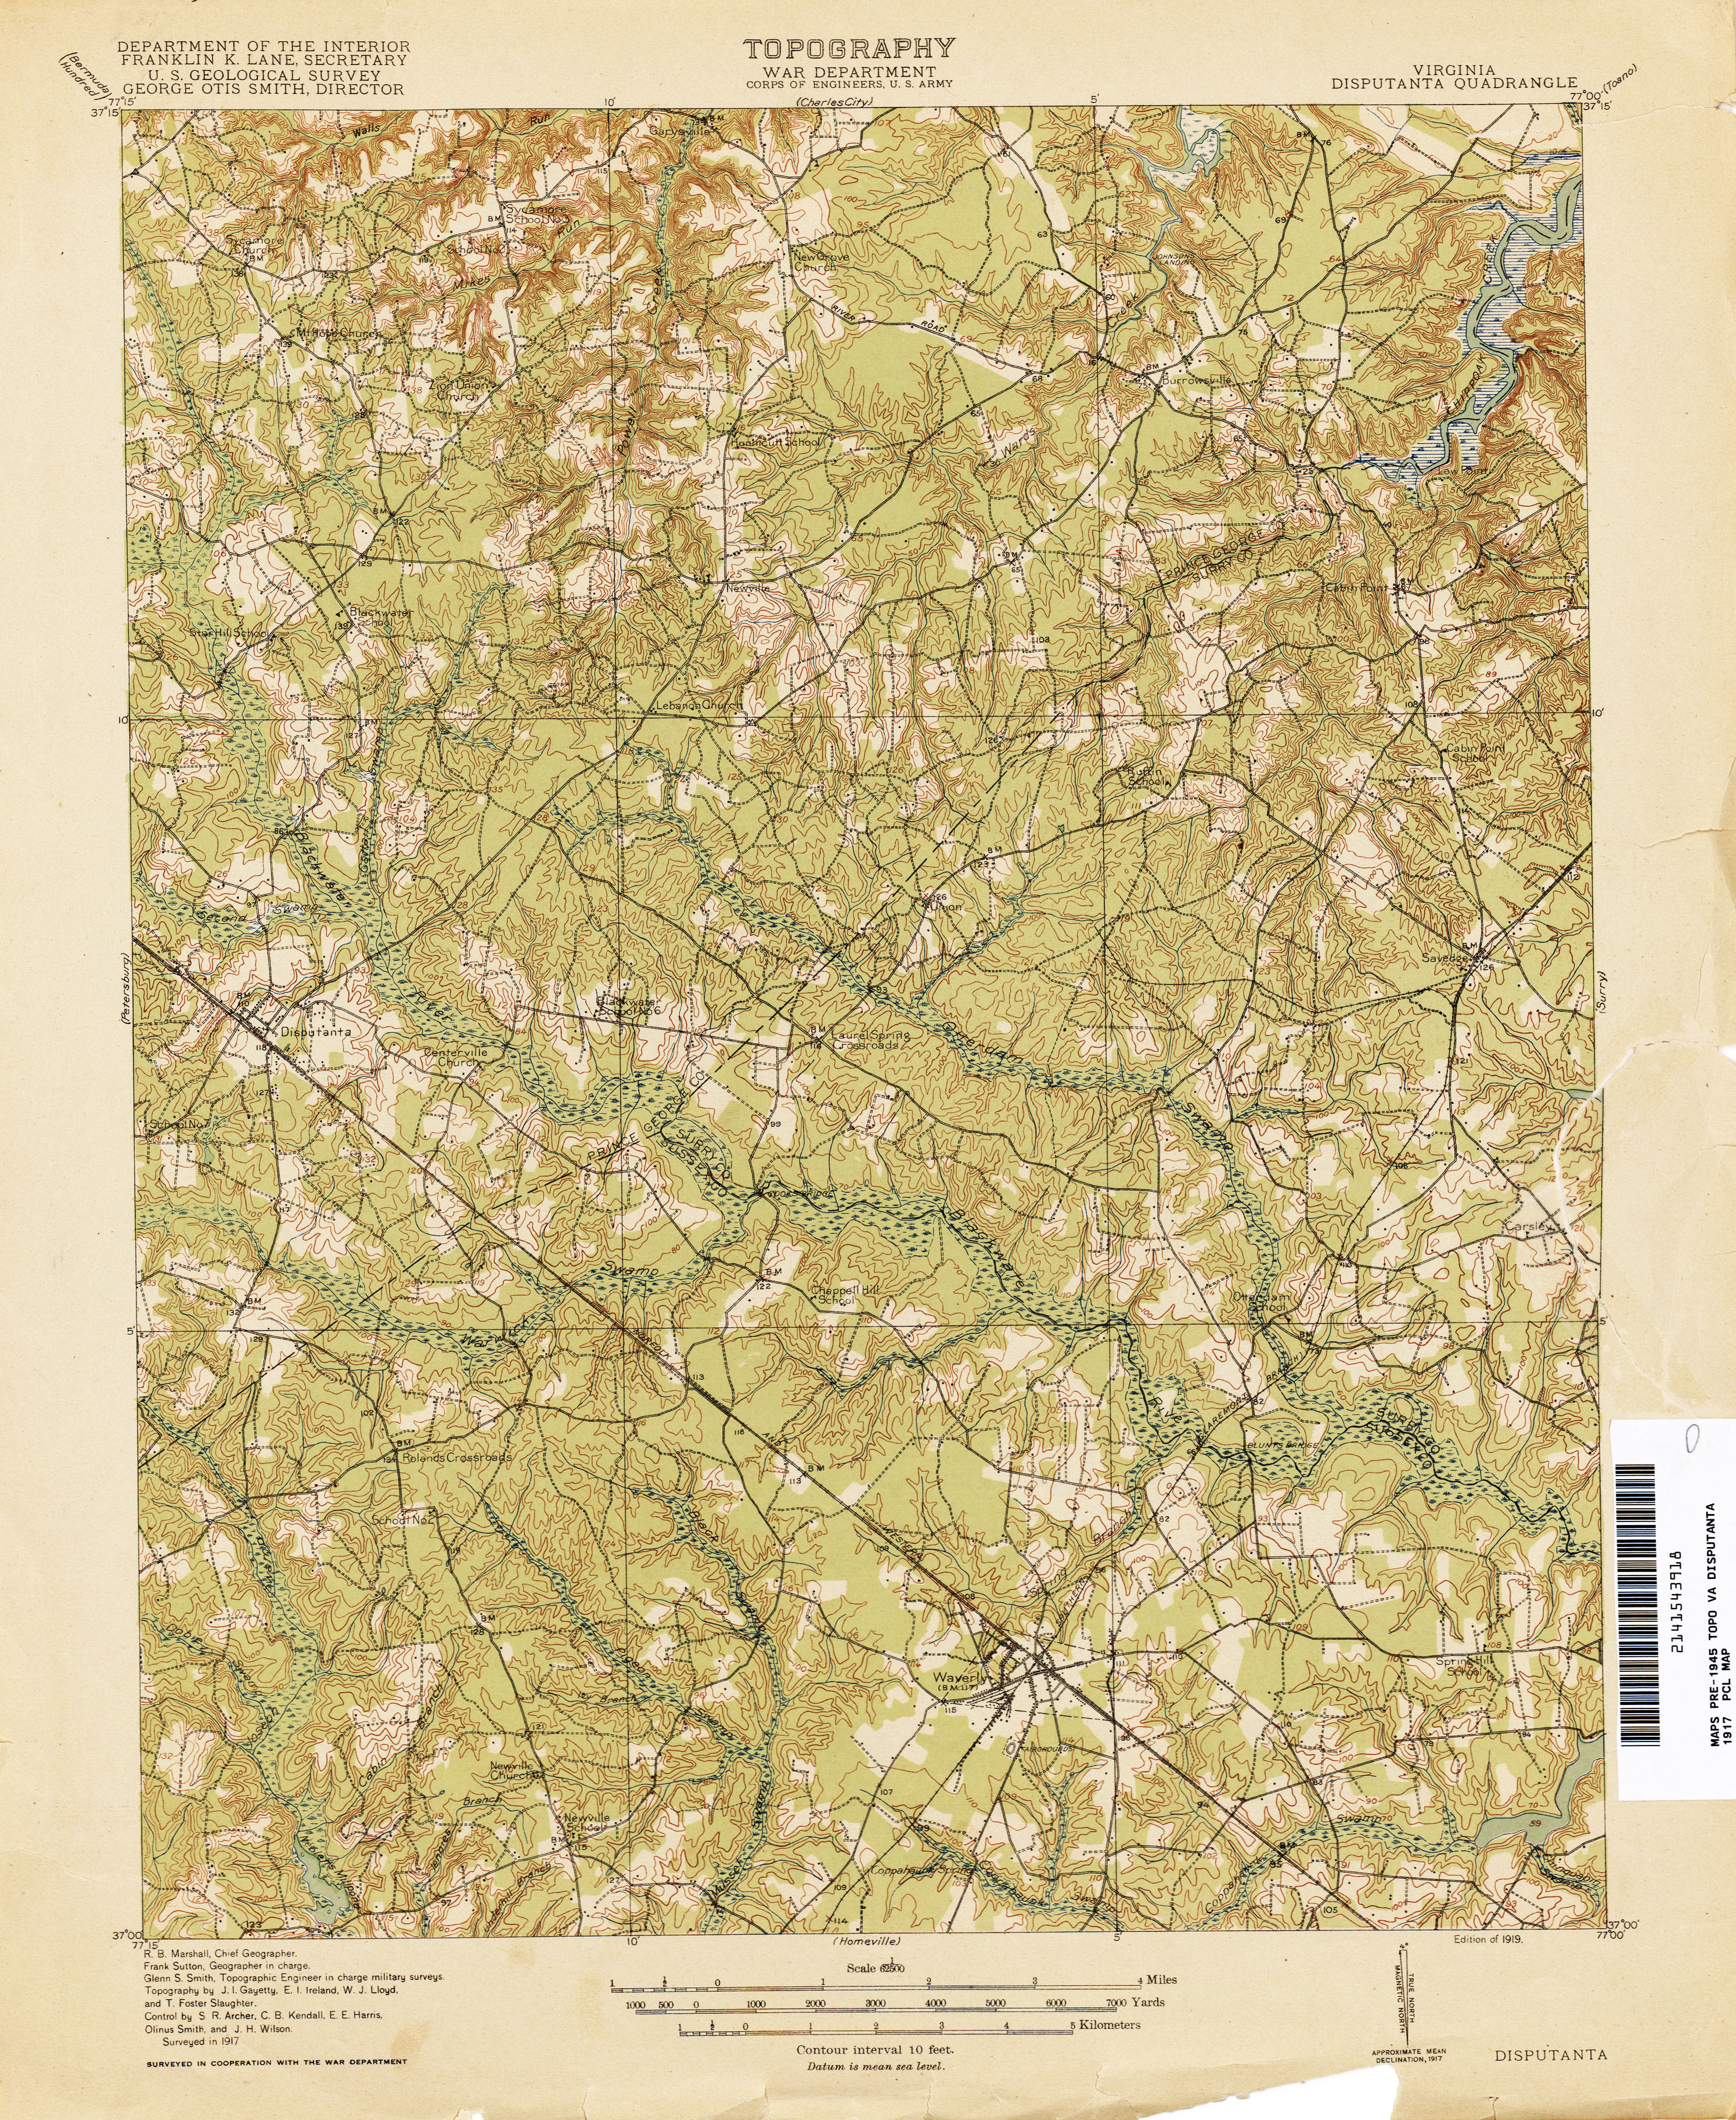 Virginia Historical Topographic Maps Perry Castaneda Map